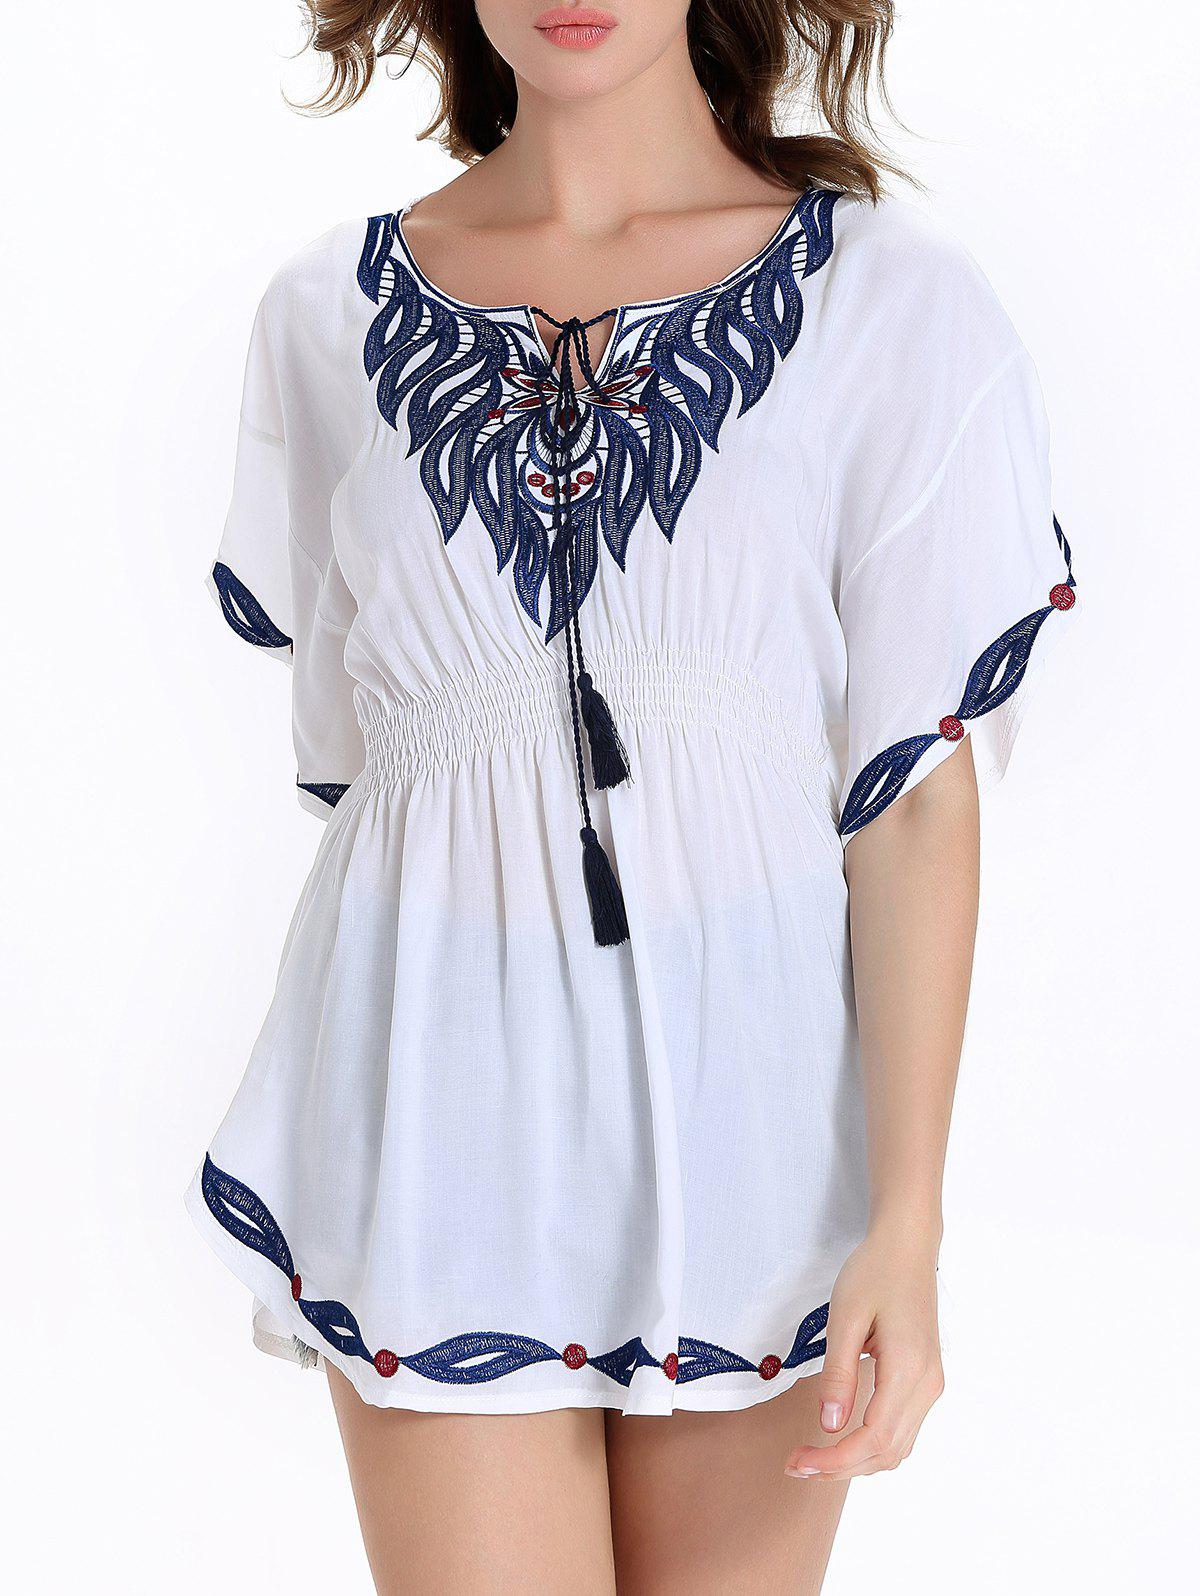 Stylish Bat Sleeve Ethnic Print Scoop Neck Blouse For Women - WHITE XL